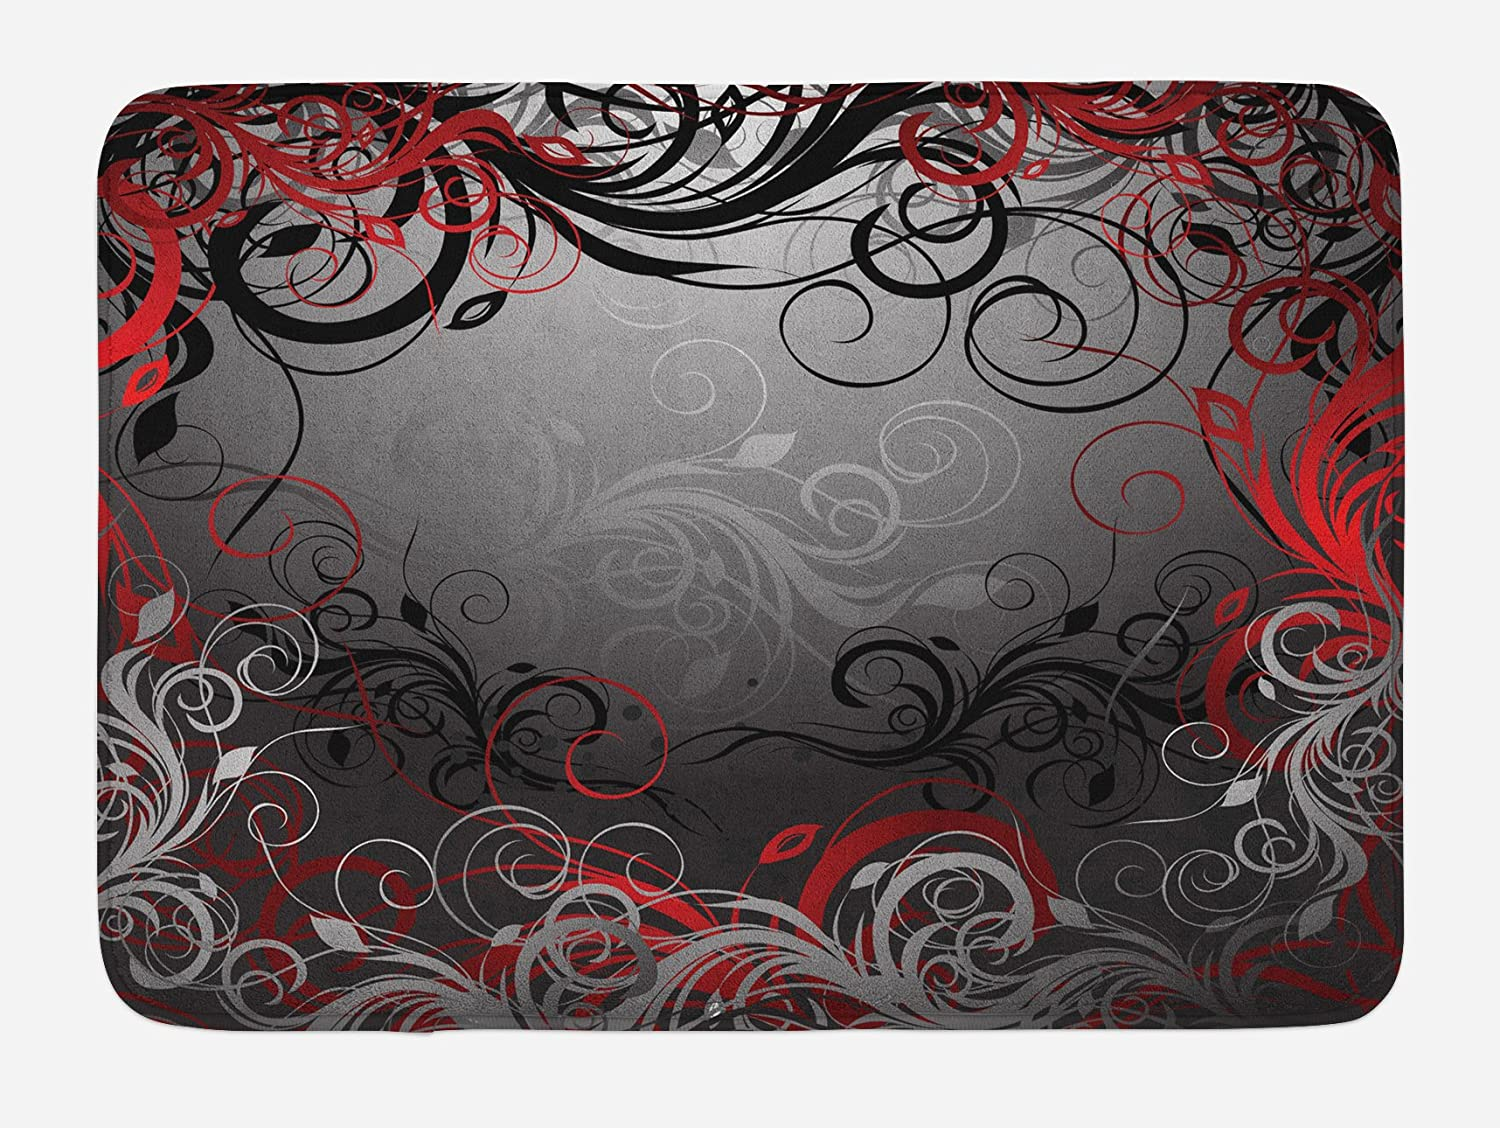 """Lunarable Abstract Bath Mat, Mystic Forest Floral Swirls Leaves Nature Fading Ombre Effect, Plush Bathroom Decor Mat with Non Slip Backing, 29.5"""" X 17.5"""", Charcoal Scarlet"""